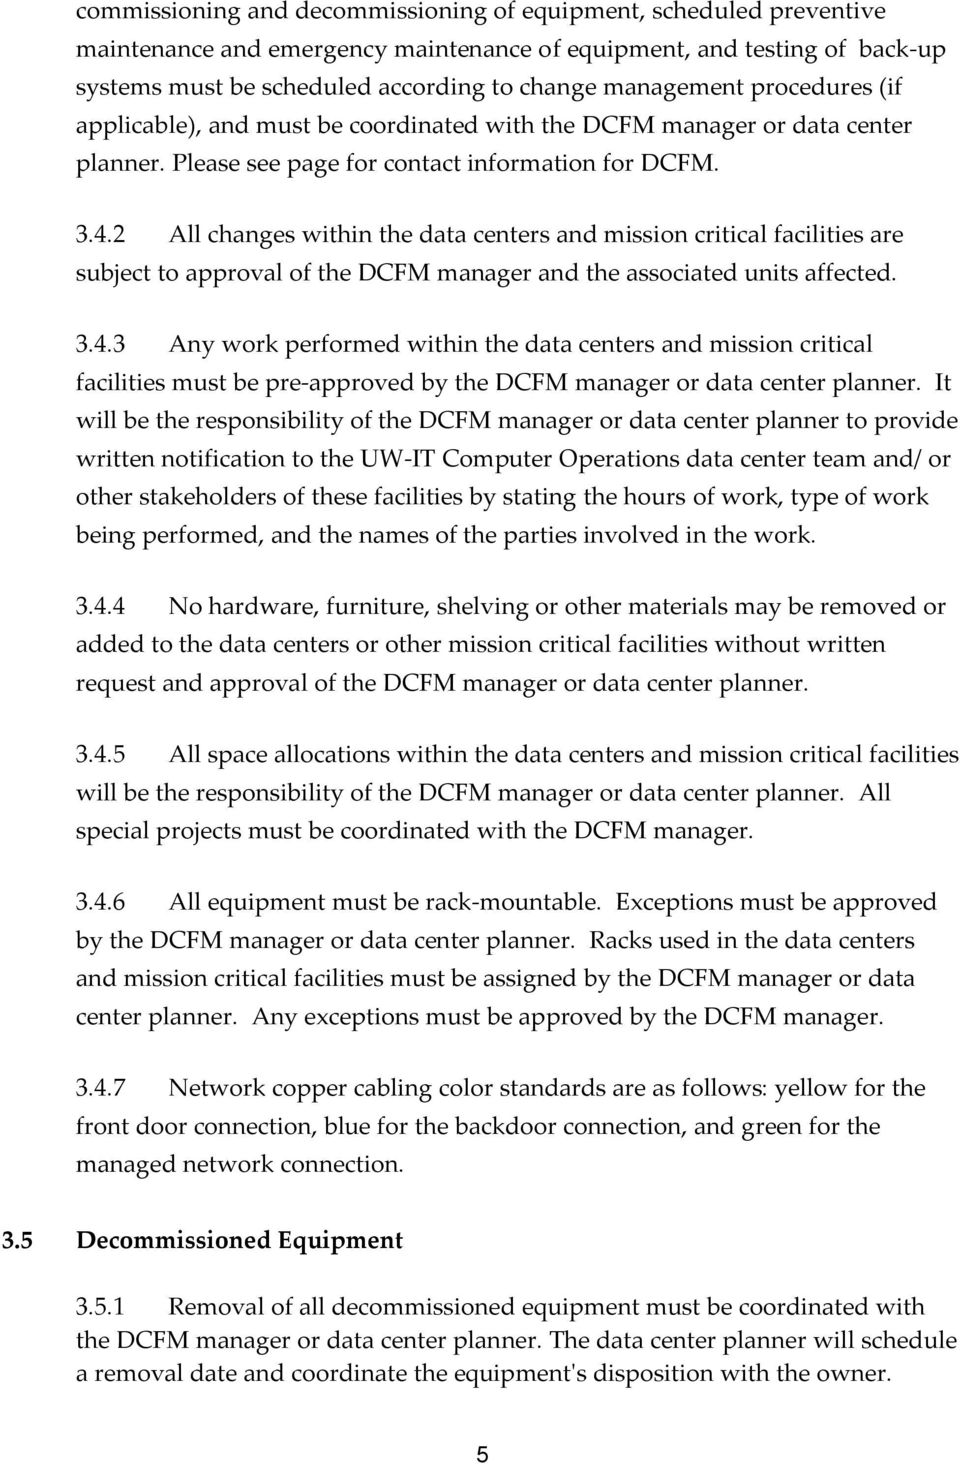 2 All changes within the data centers and mission critical facilities are subject to approval of the DCFM manager and the associated units affected. 3.4.